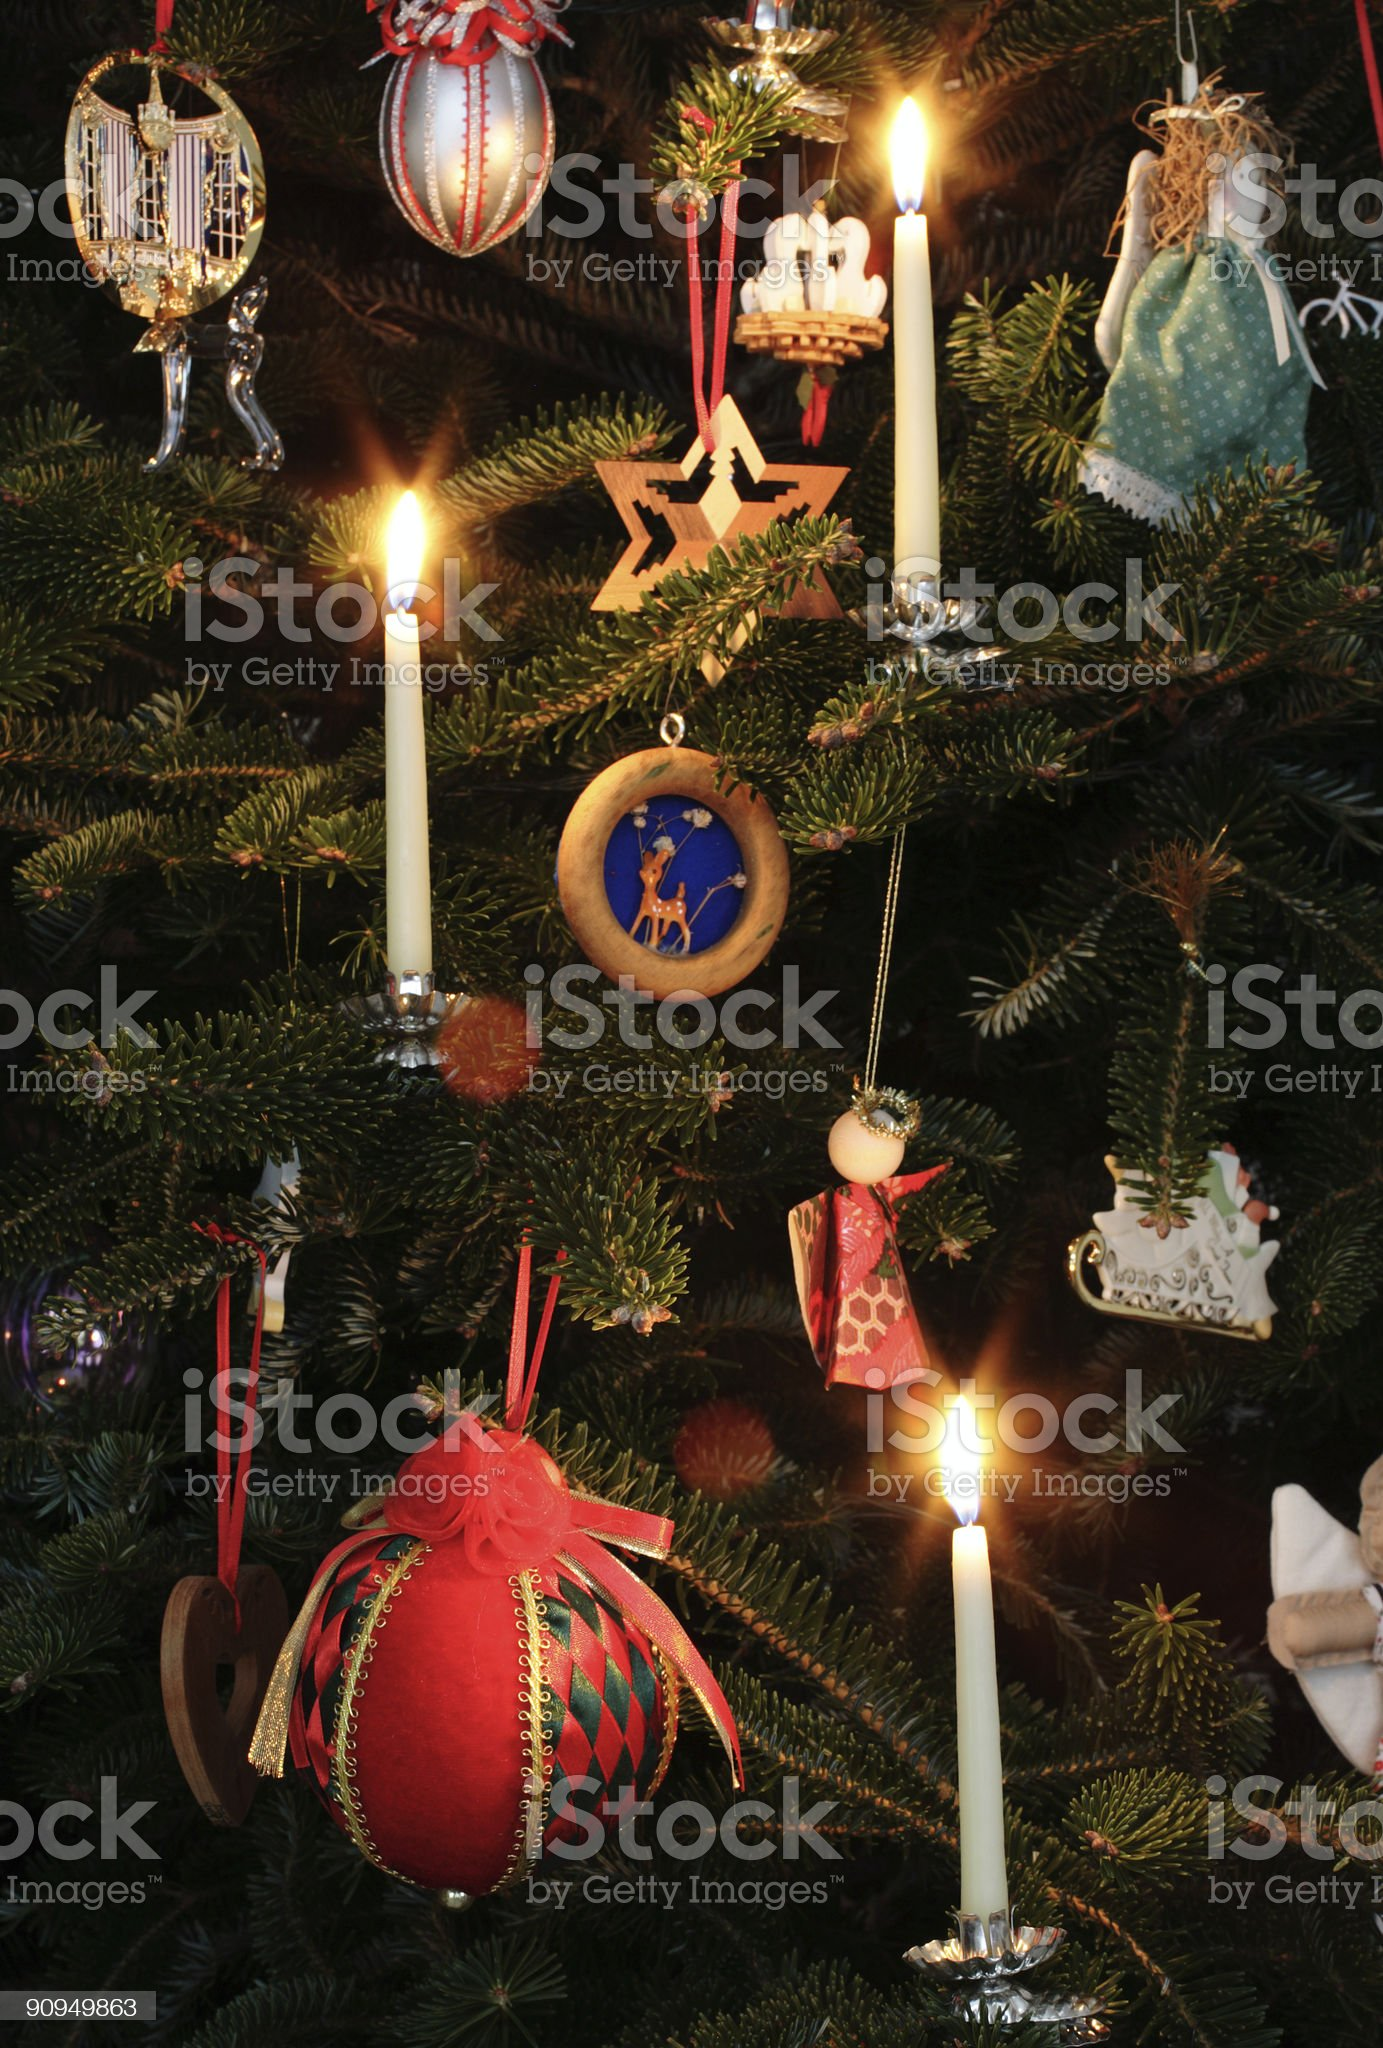 All lit up for Christmas royalty-free stock photo